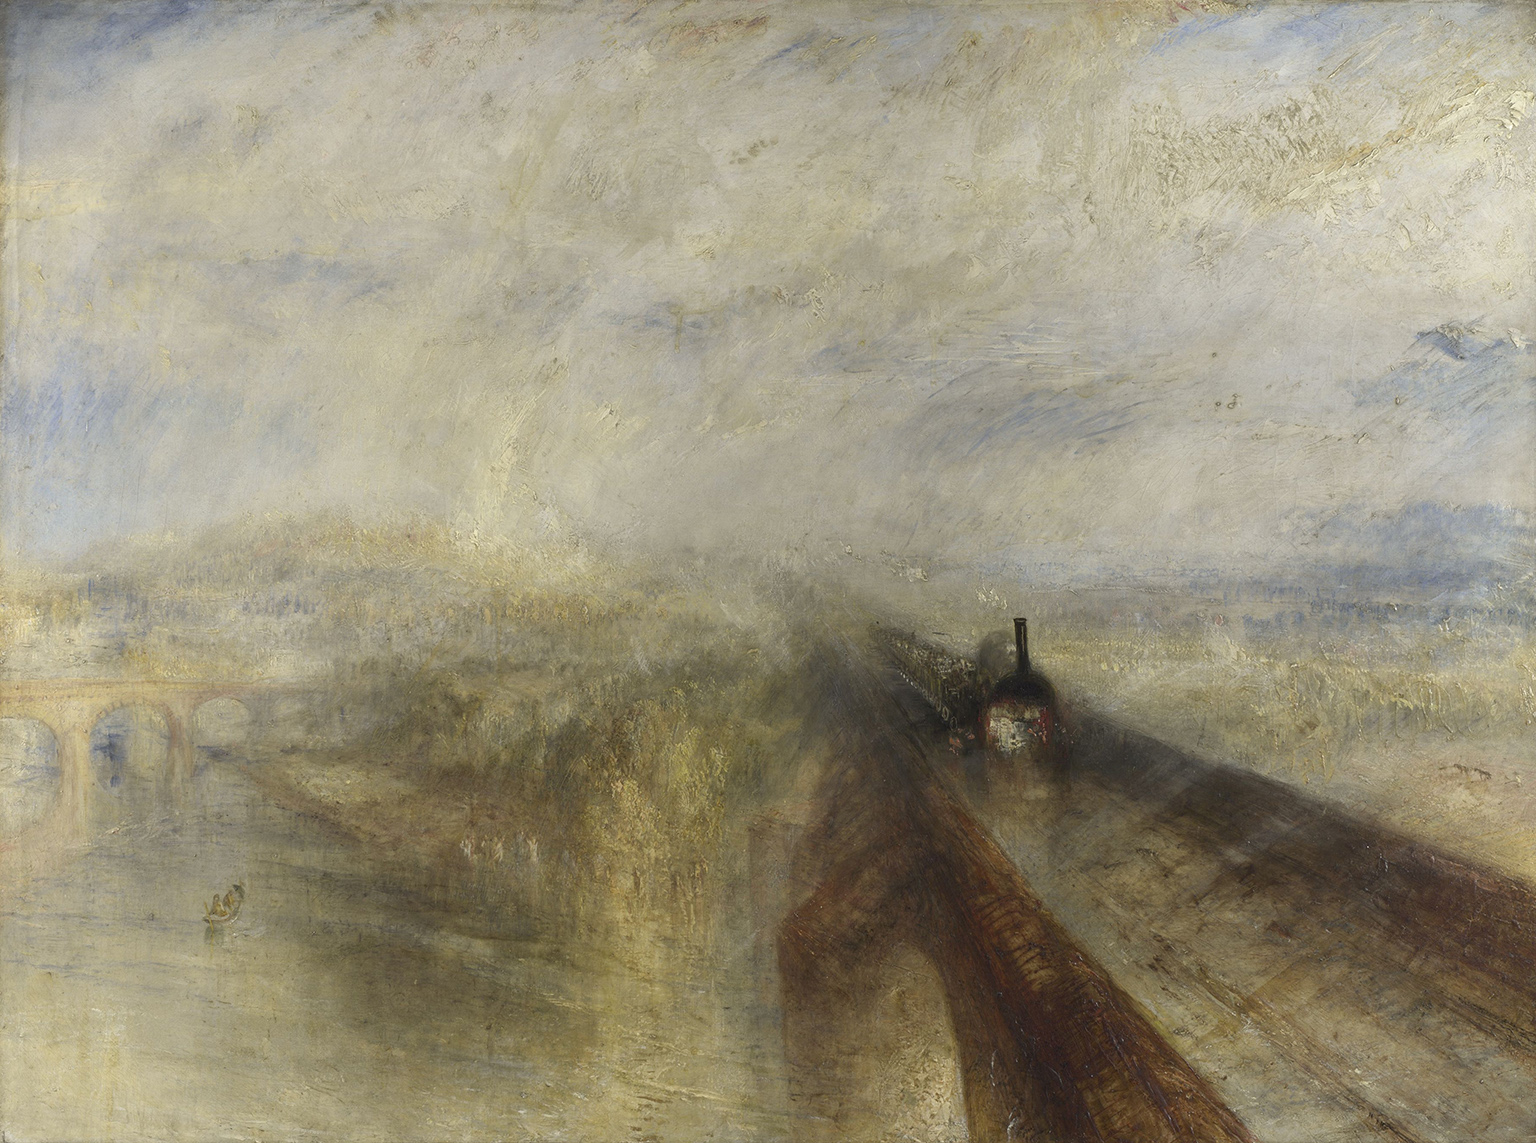 JMW Turner Rain, Steam and Speed - the Great Western Railway exhibited 1844 The National Gallery, London